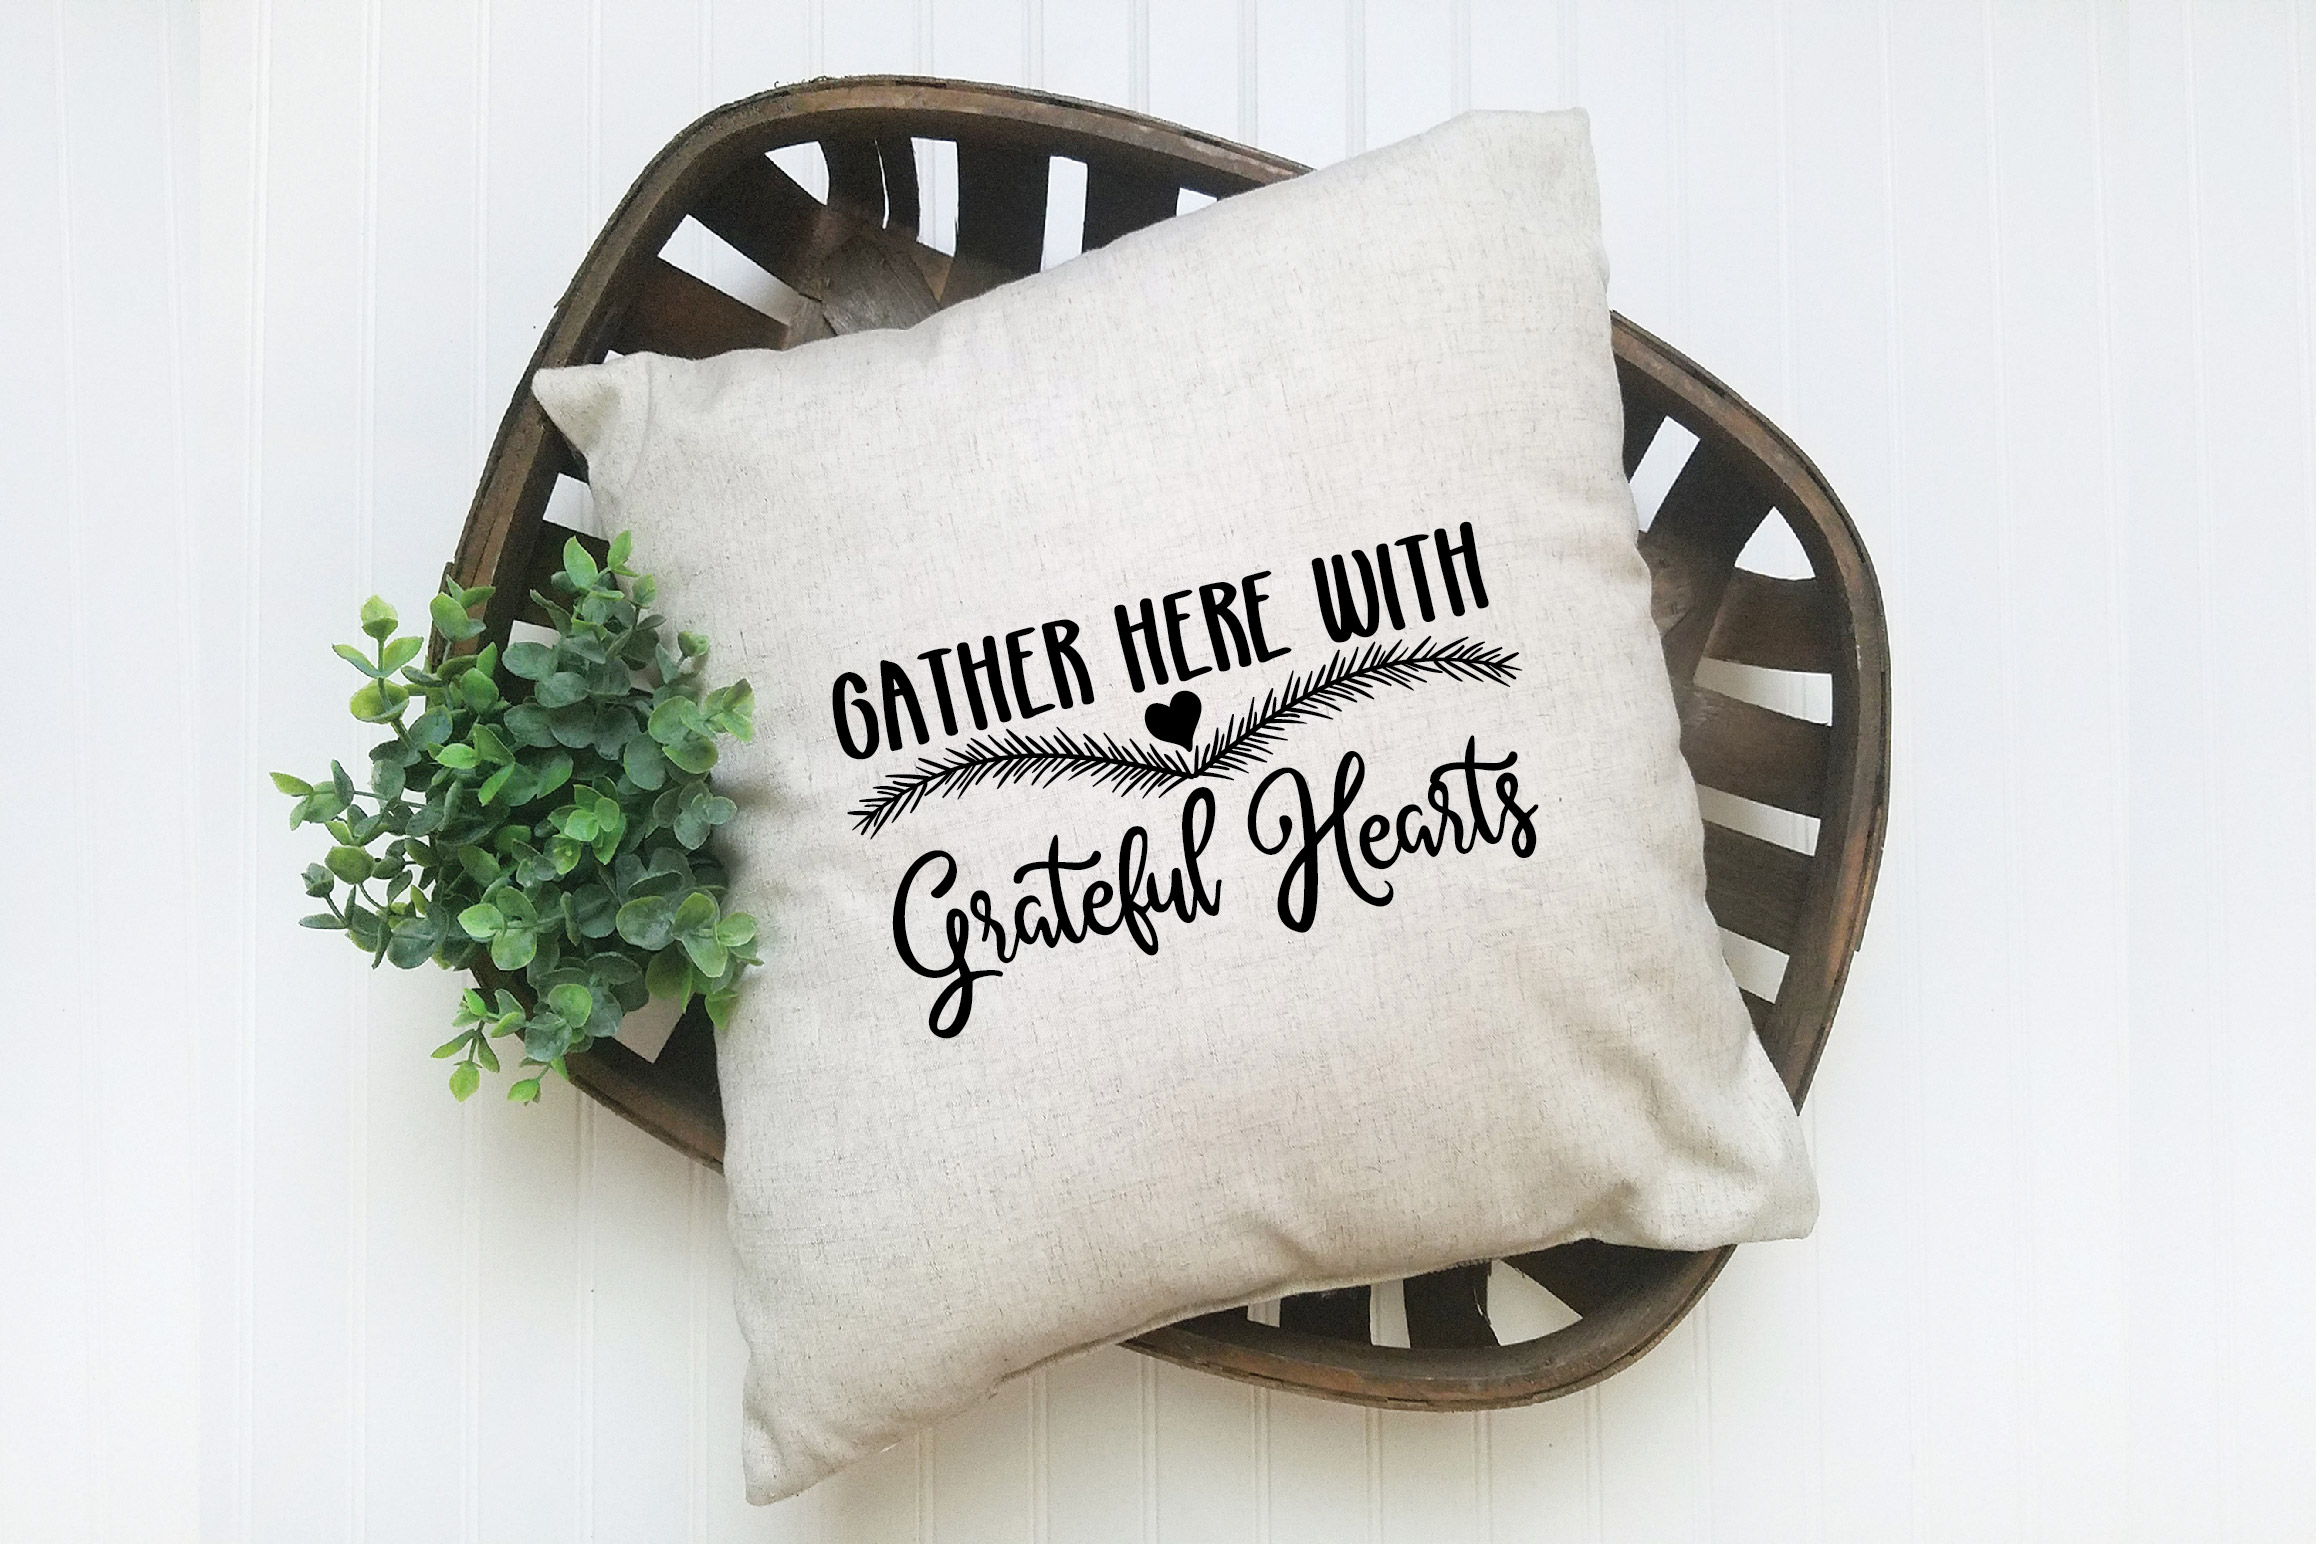 Christmas SVG Cut File -Gather Here with Grateful Hearts SVG example image 7